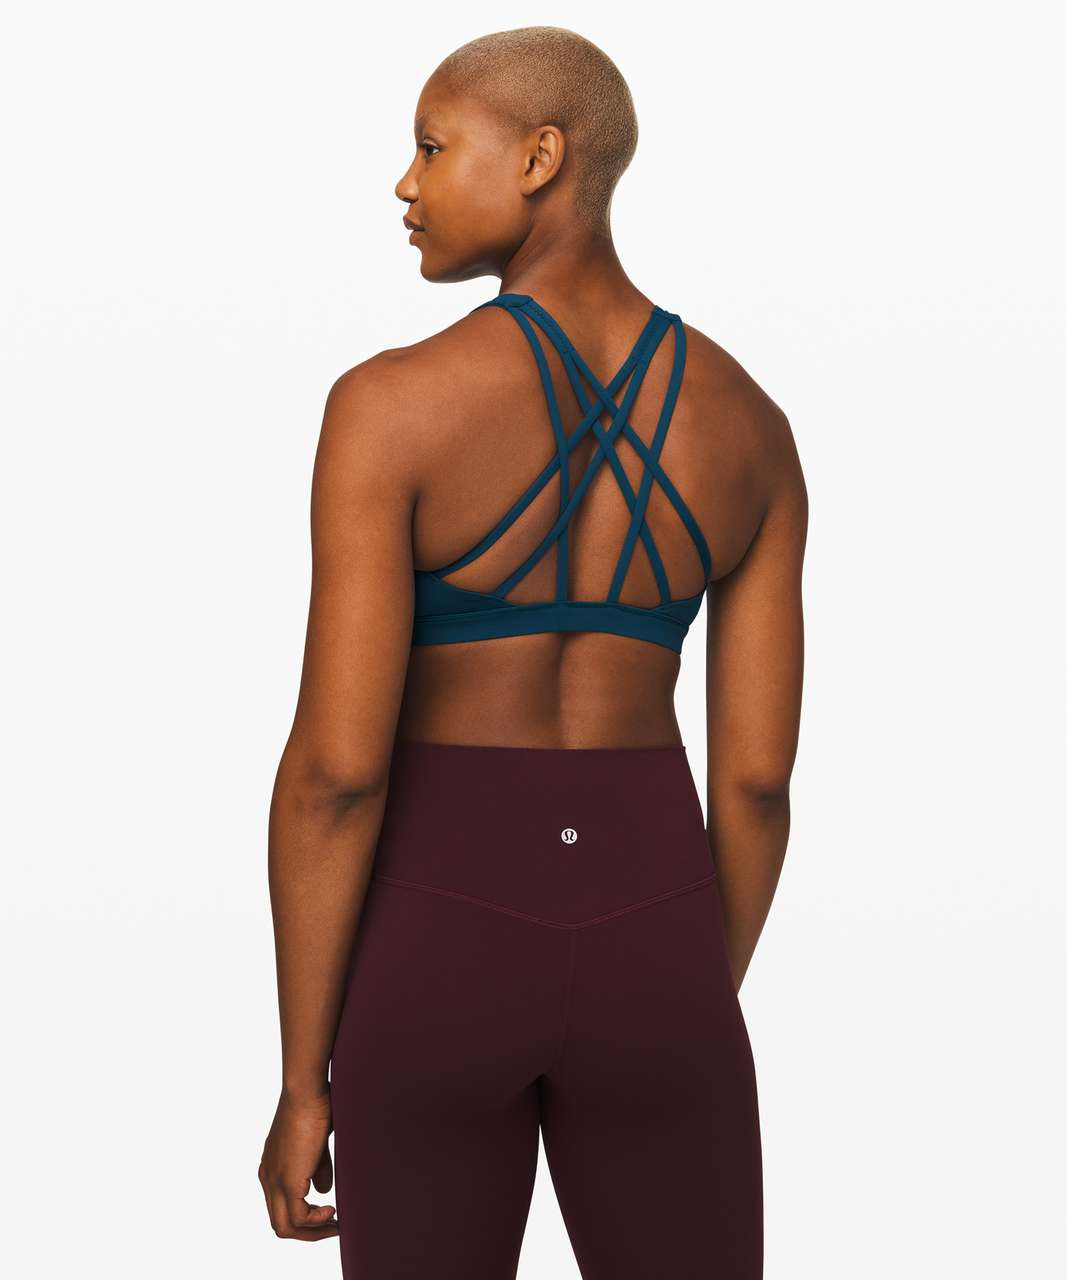 Lululemon Free To Be Serene Bra *Light Support, C/D Cup - Night Diver